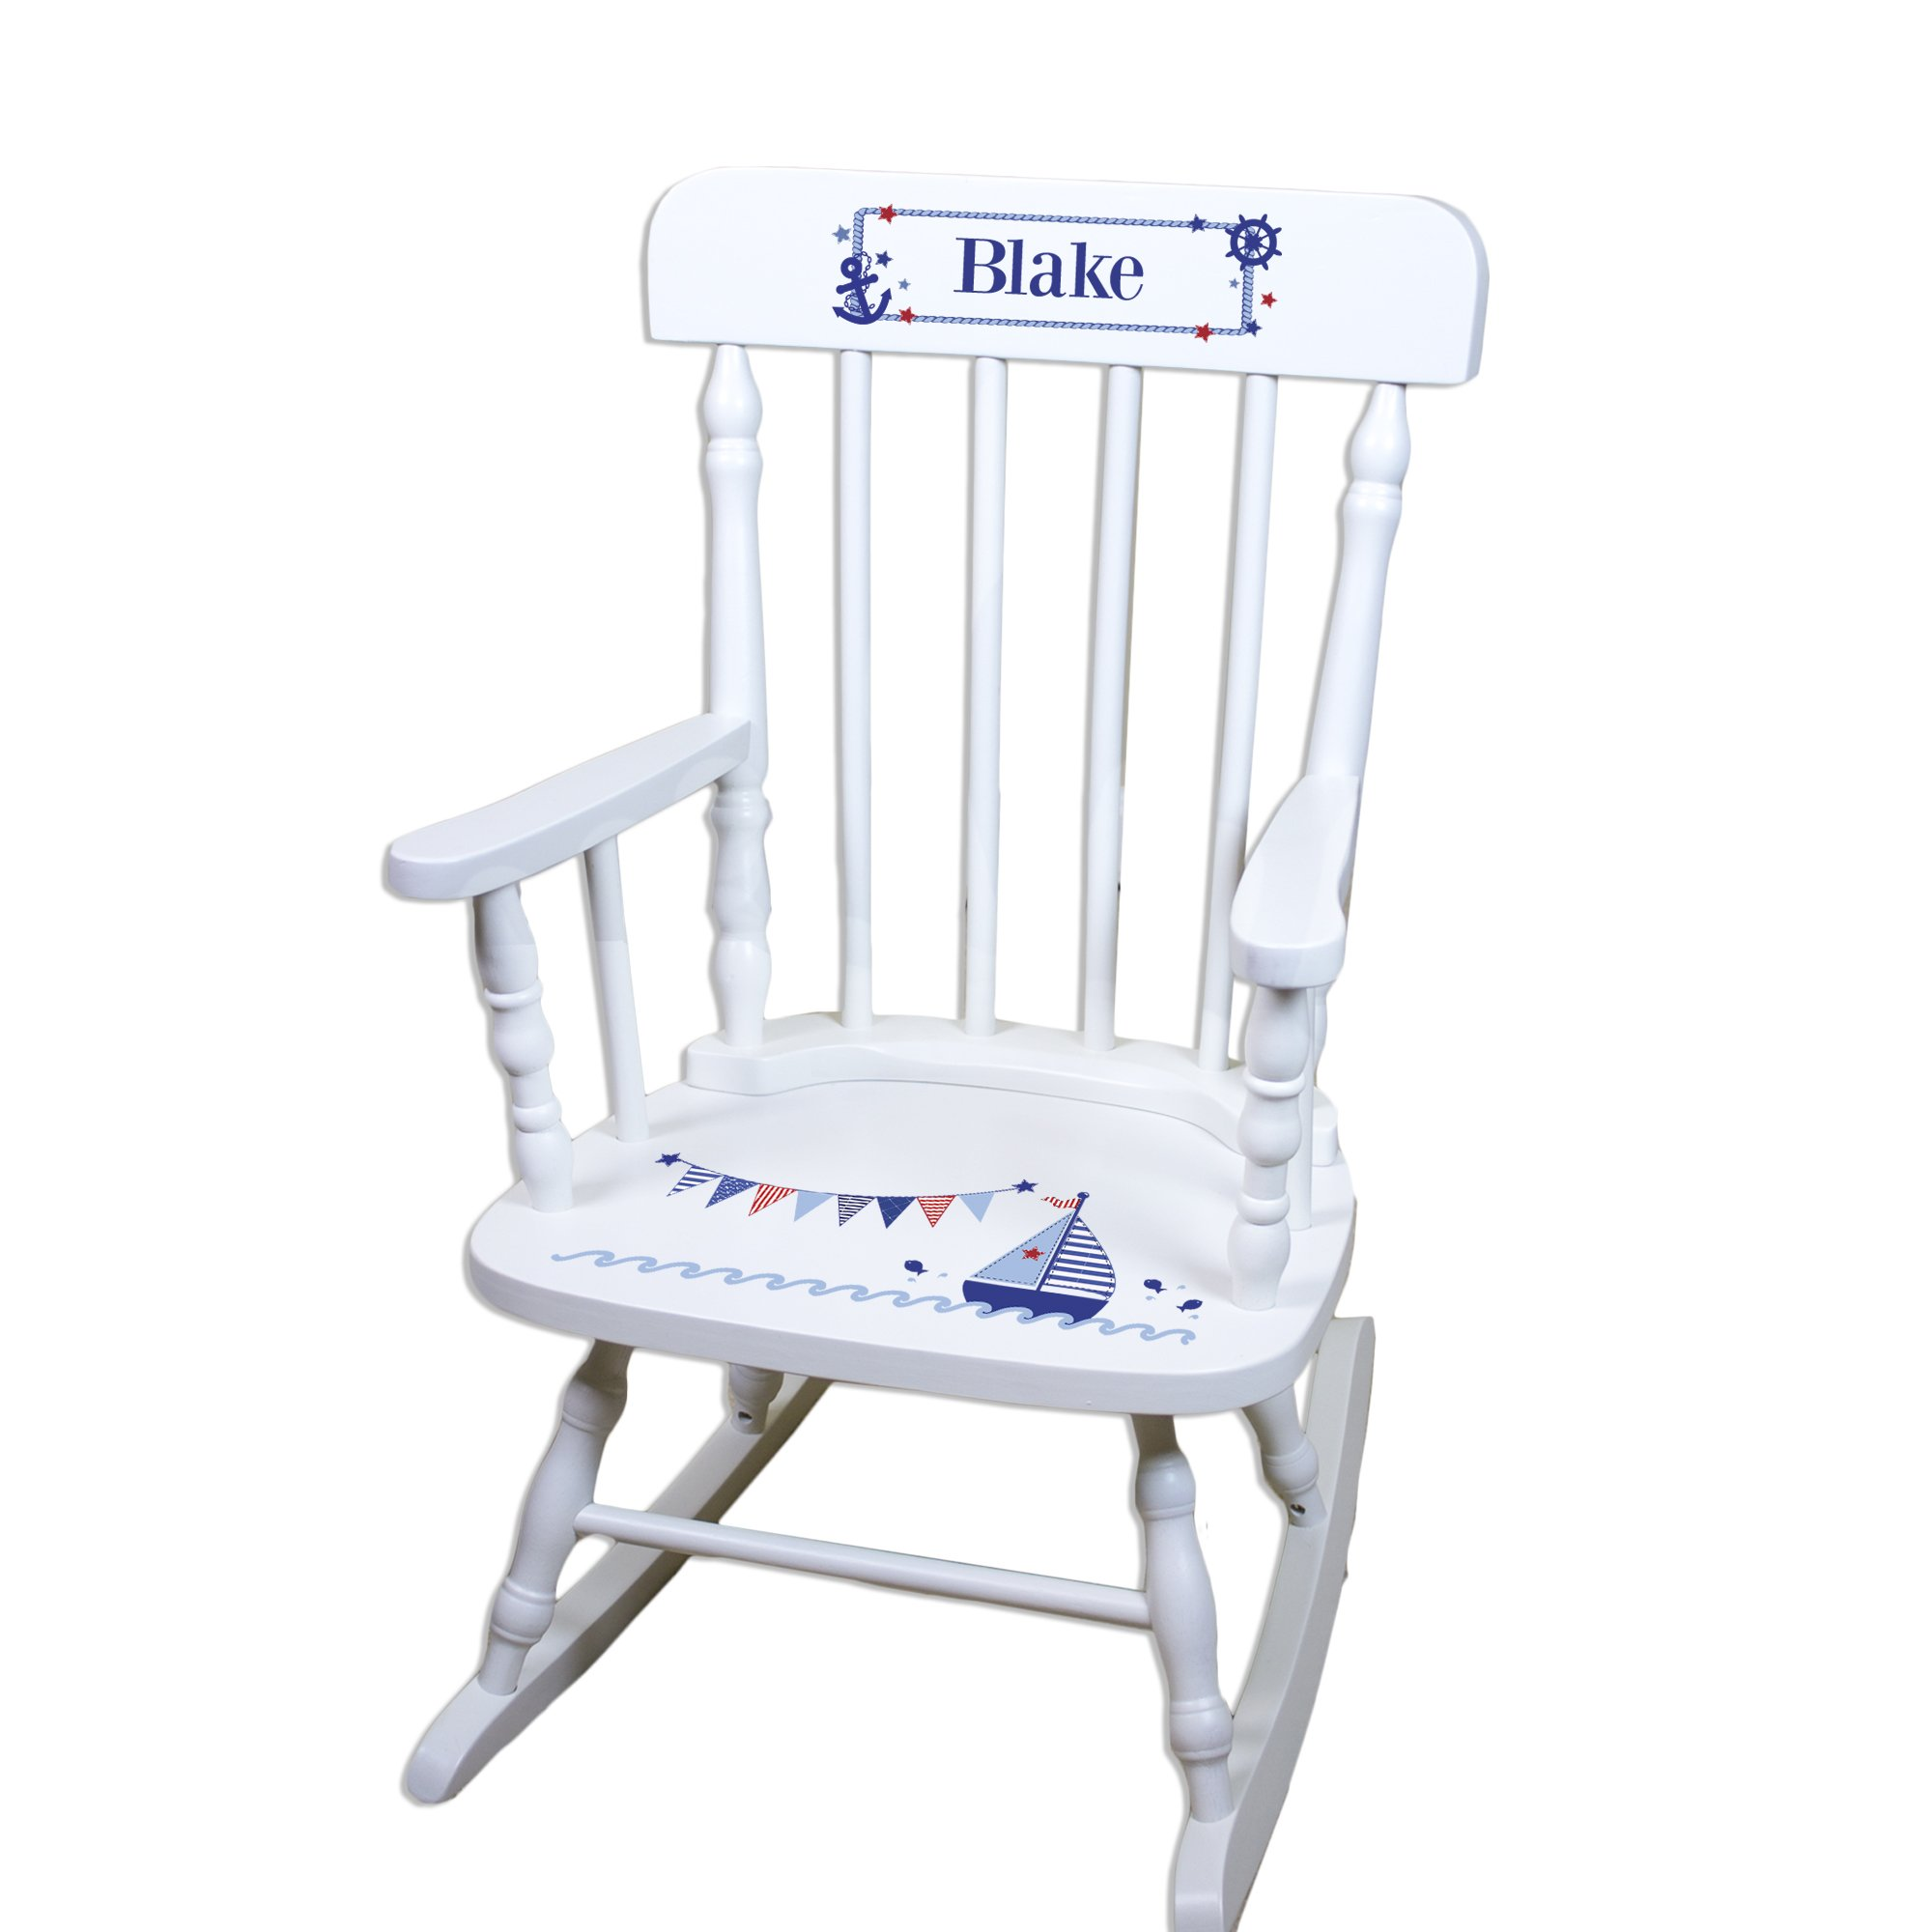 Children's Personalized White Sailboat Rocking Chair